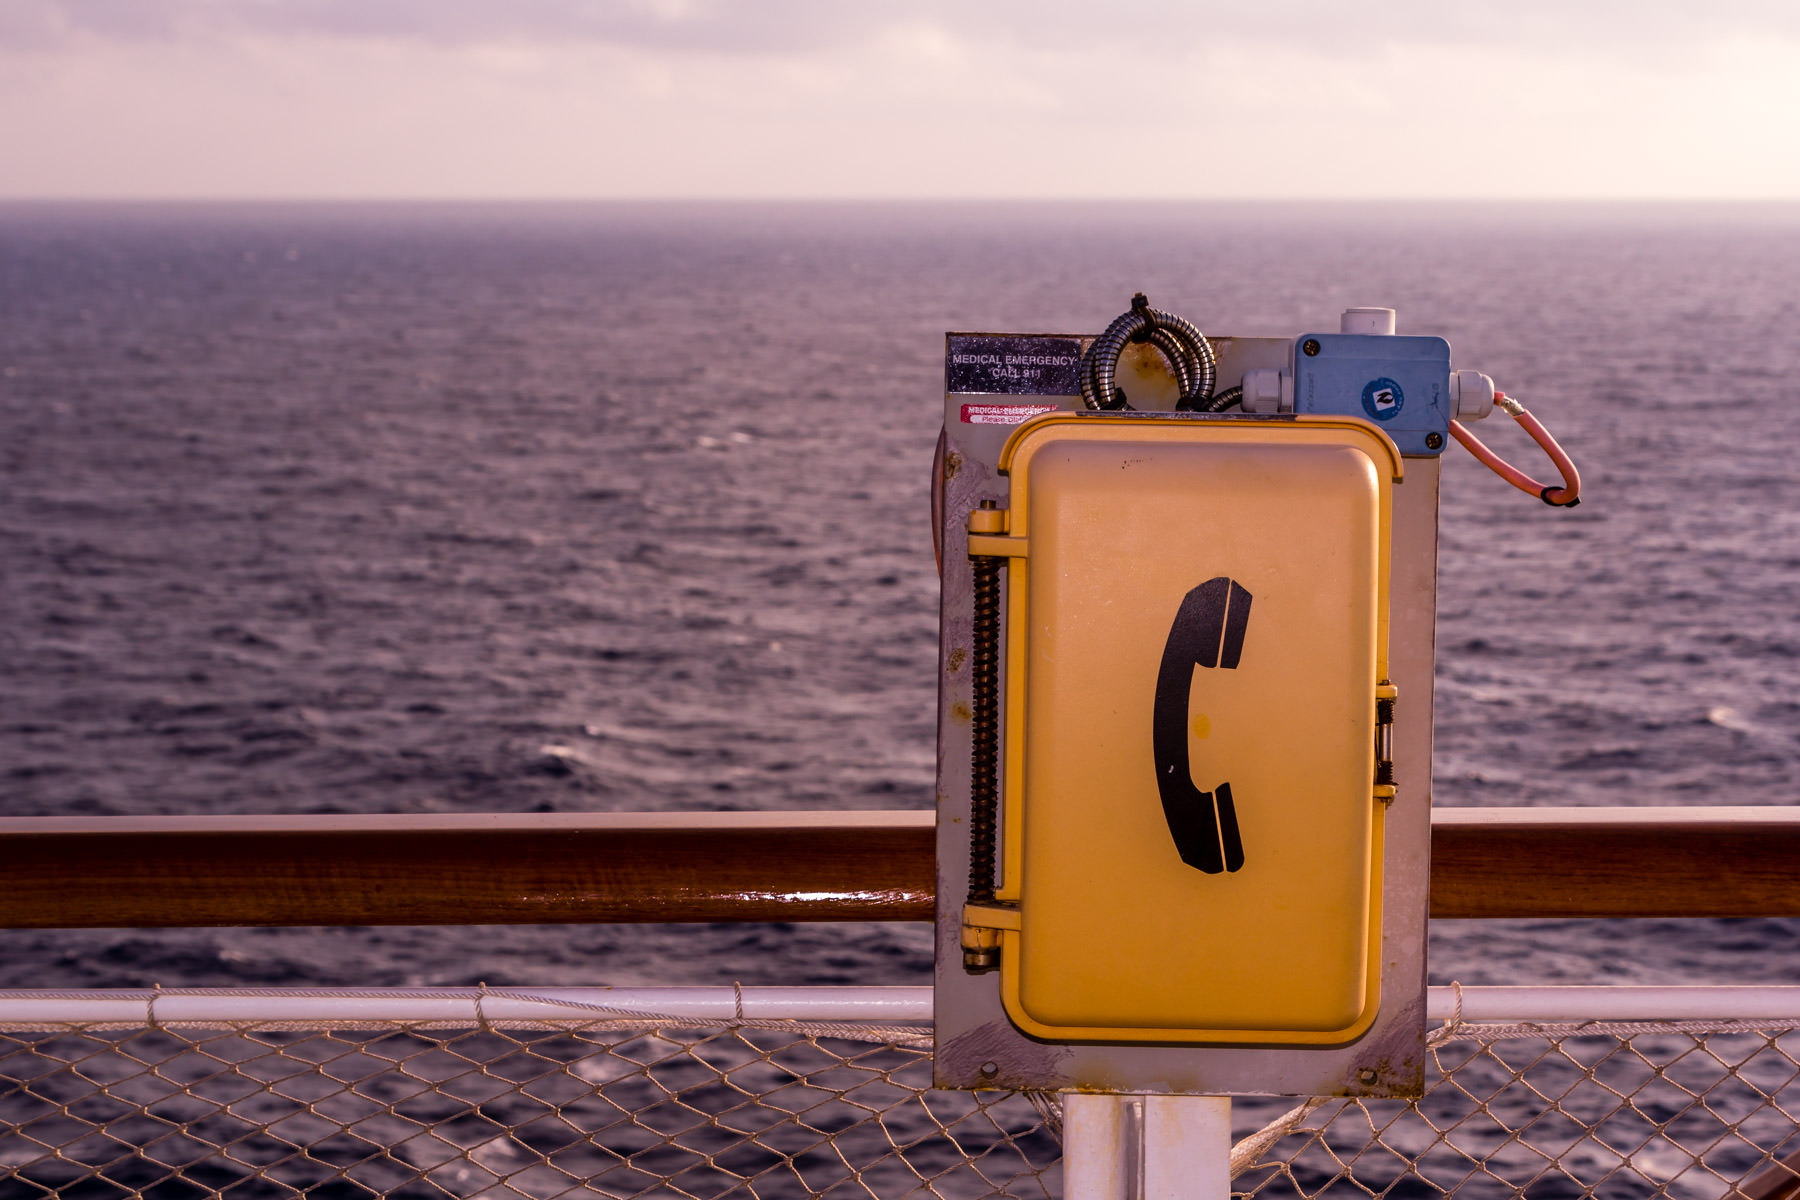 A shipboard telephone box mounted on a railing aboard the cruise ship Carnival Magic.